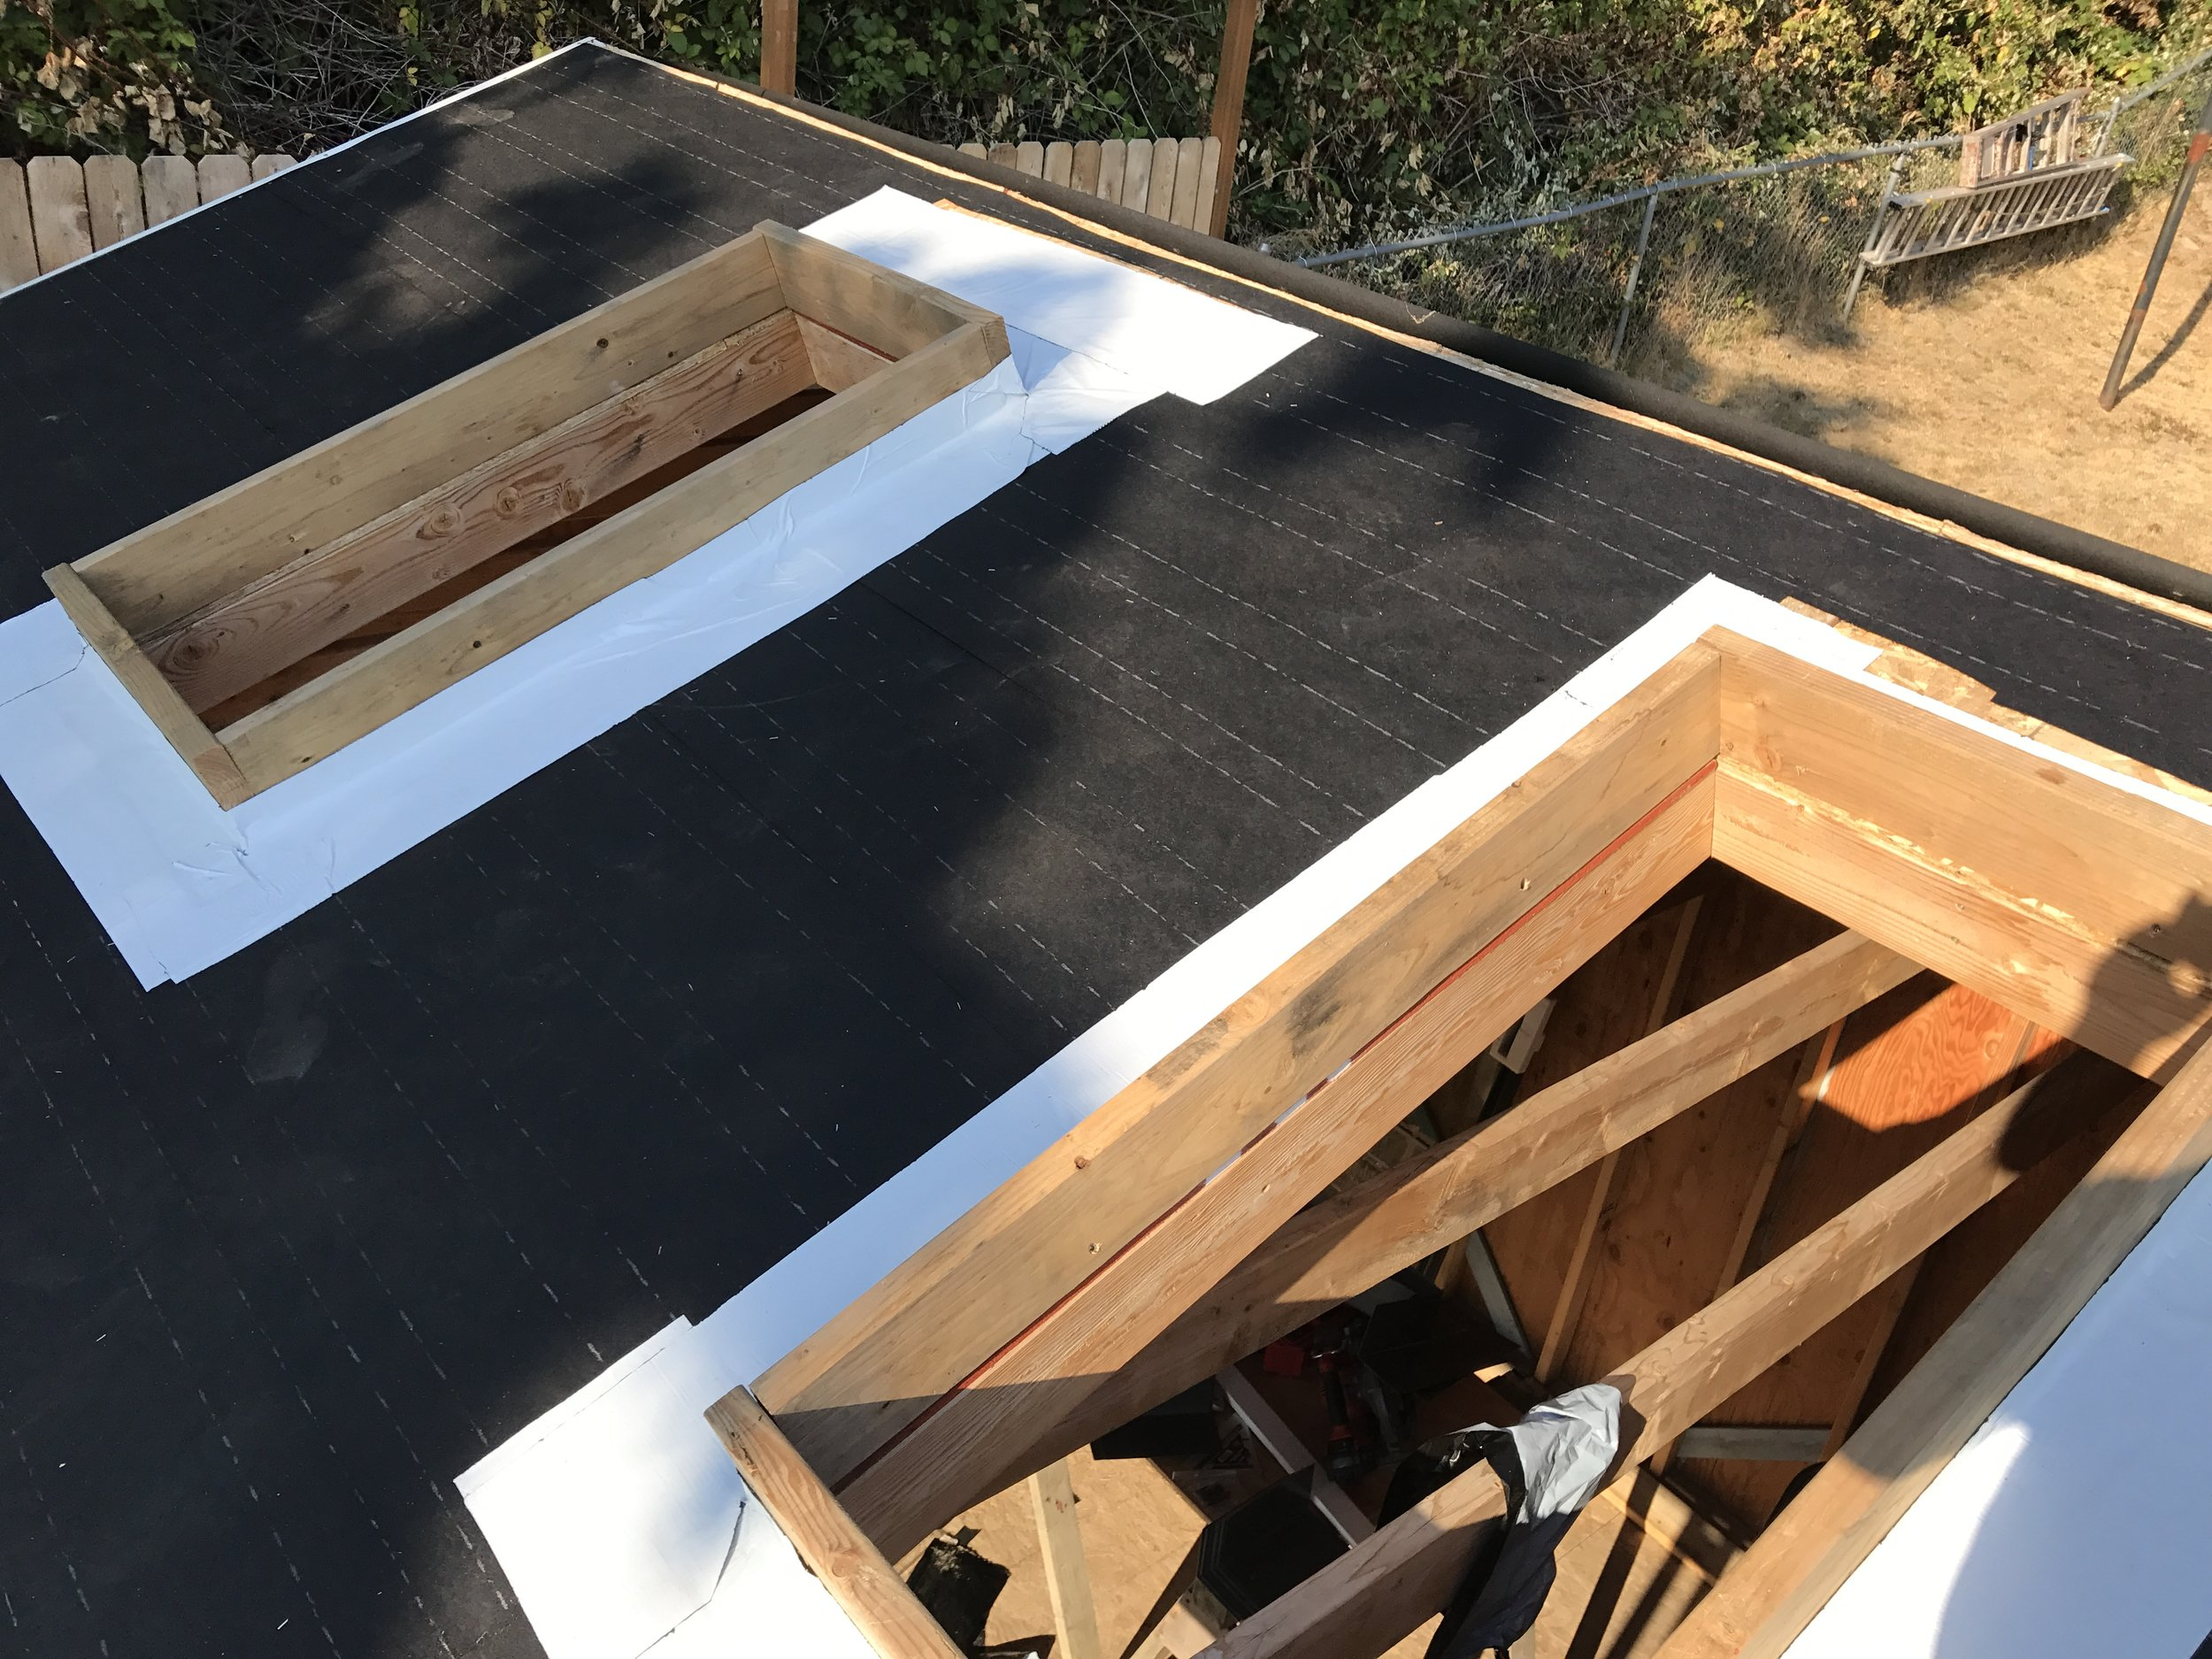 Just need some flashing and shingles and then I can install the skylights.